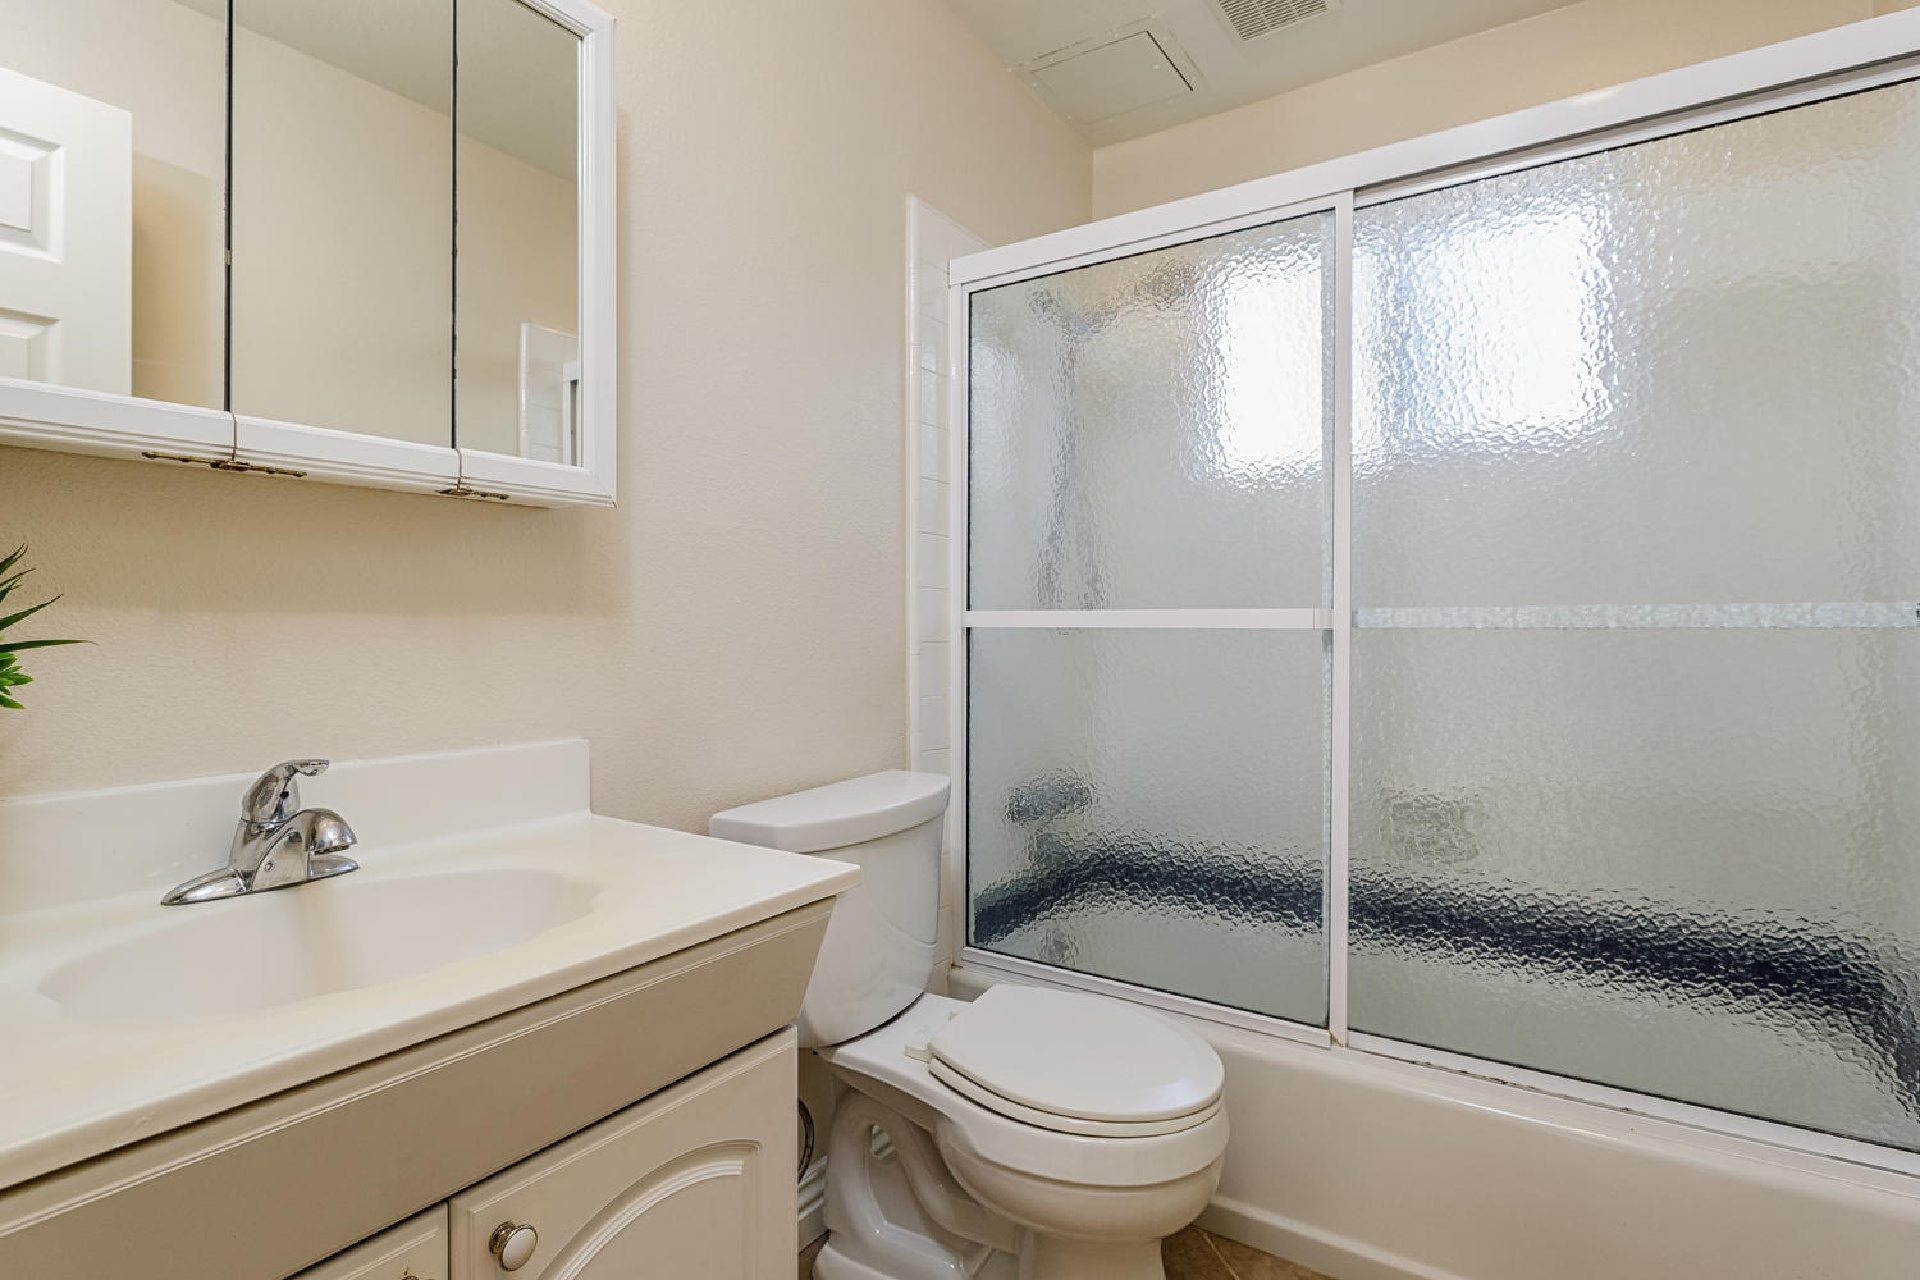 http://www.addressrealestate.com/media/images/blogs/38/2/b_14-1408-ocean-dr-oxnard-ca-93035-mls-size-019-28-bathroom-2-1500x1000-72dpi.jpg